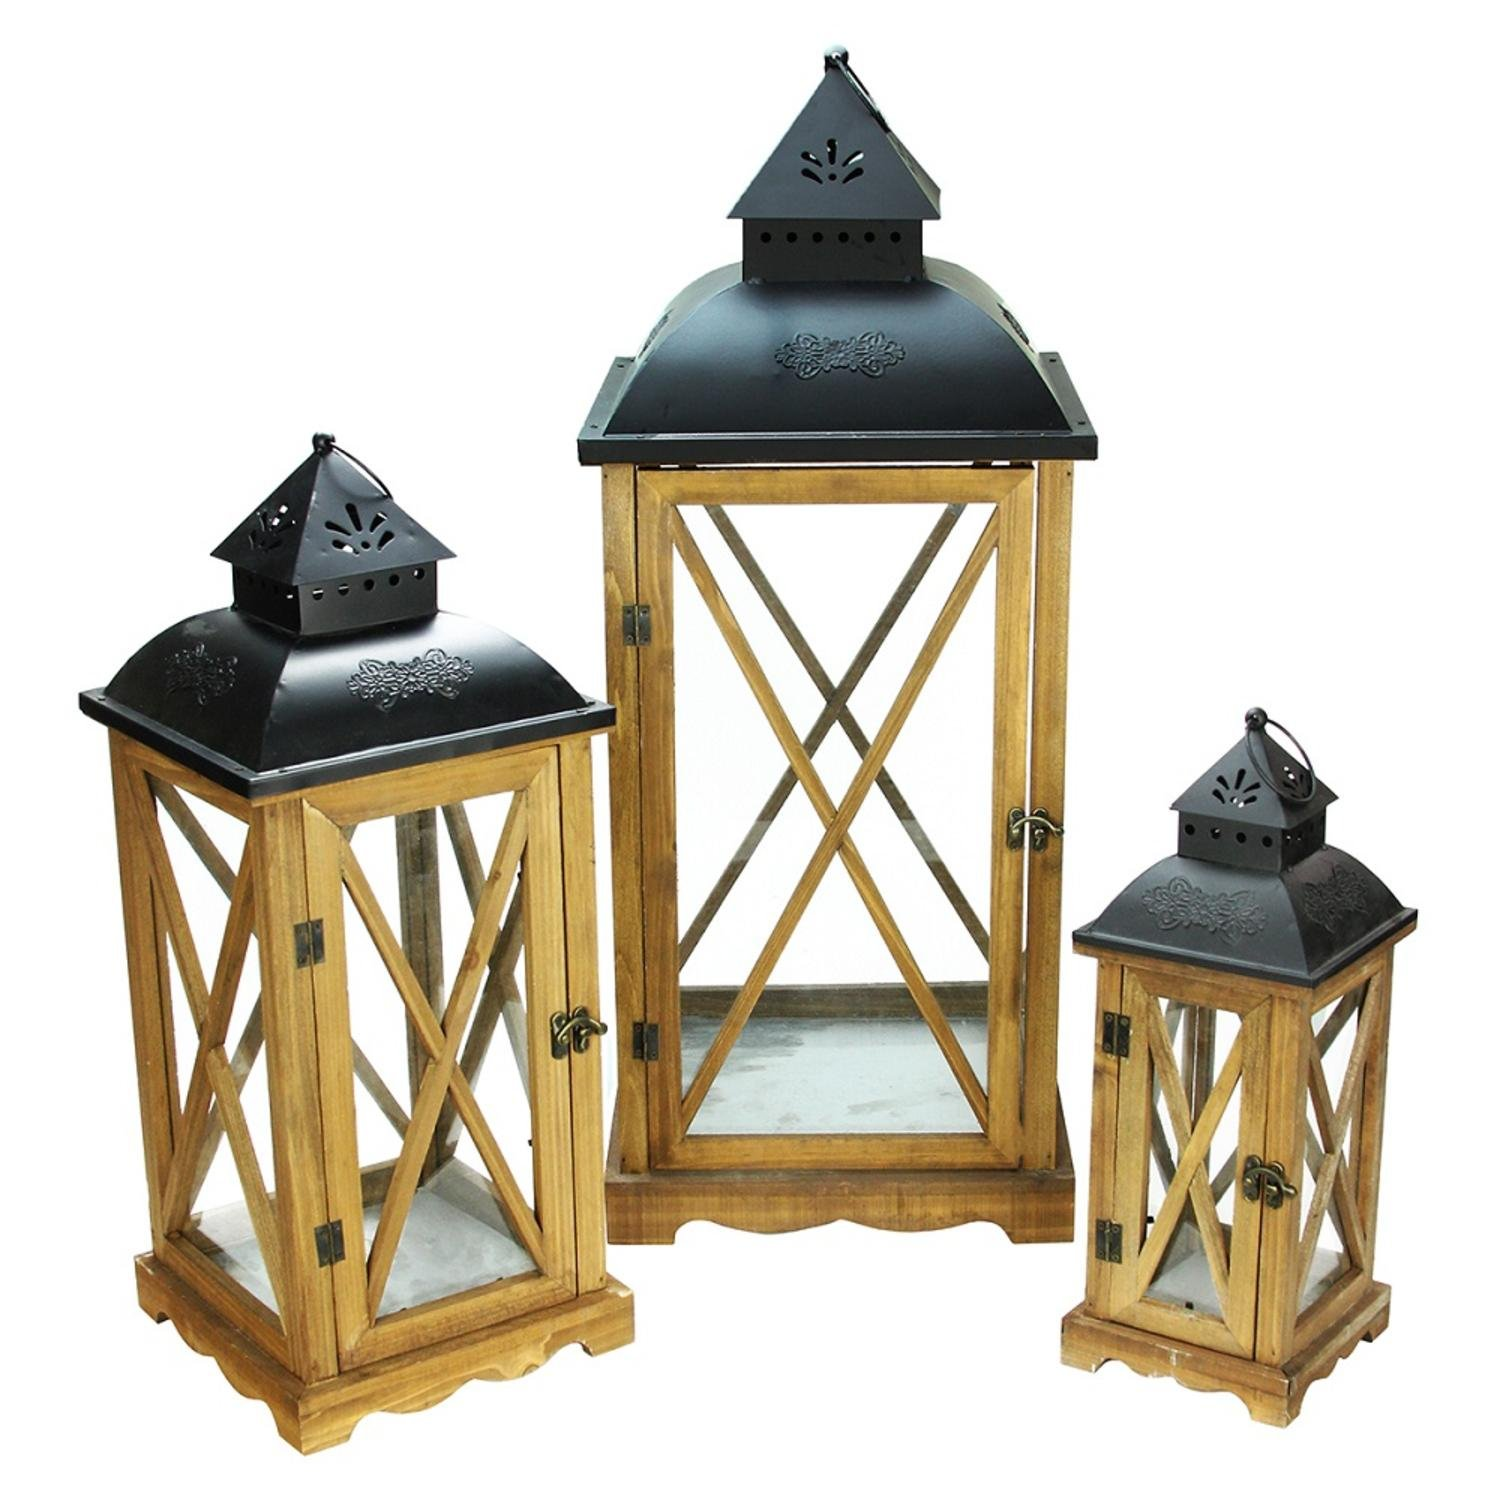 Christmas Tablescape Décor - Country elegance wooden garden style glass & black metal pillar candle lanterns - Set of 3 by Northlight